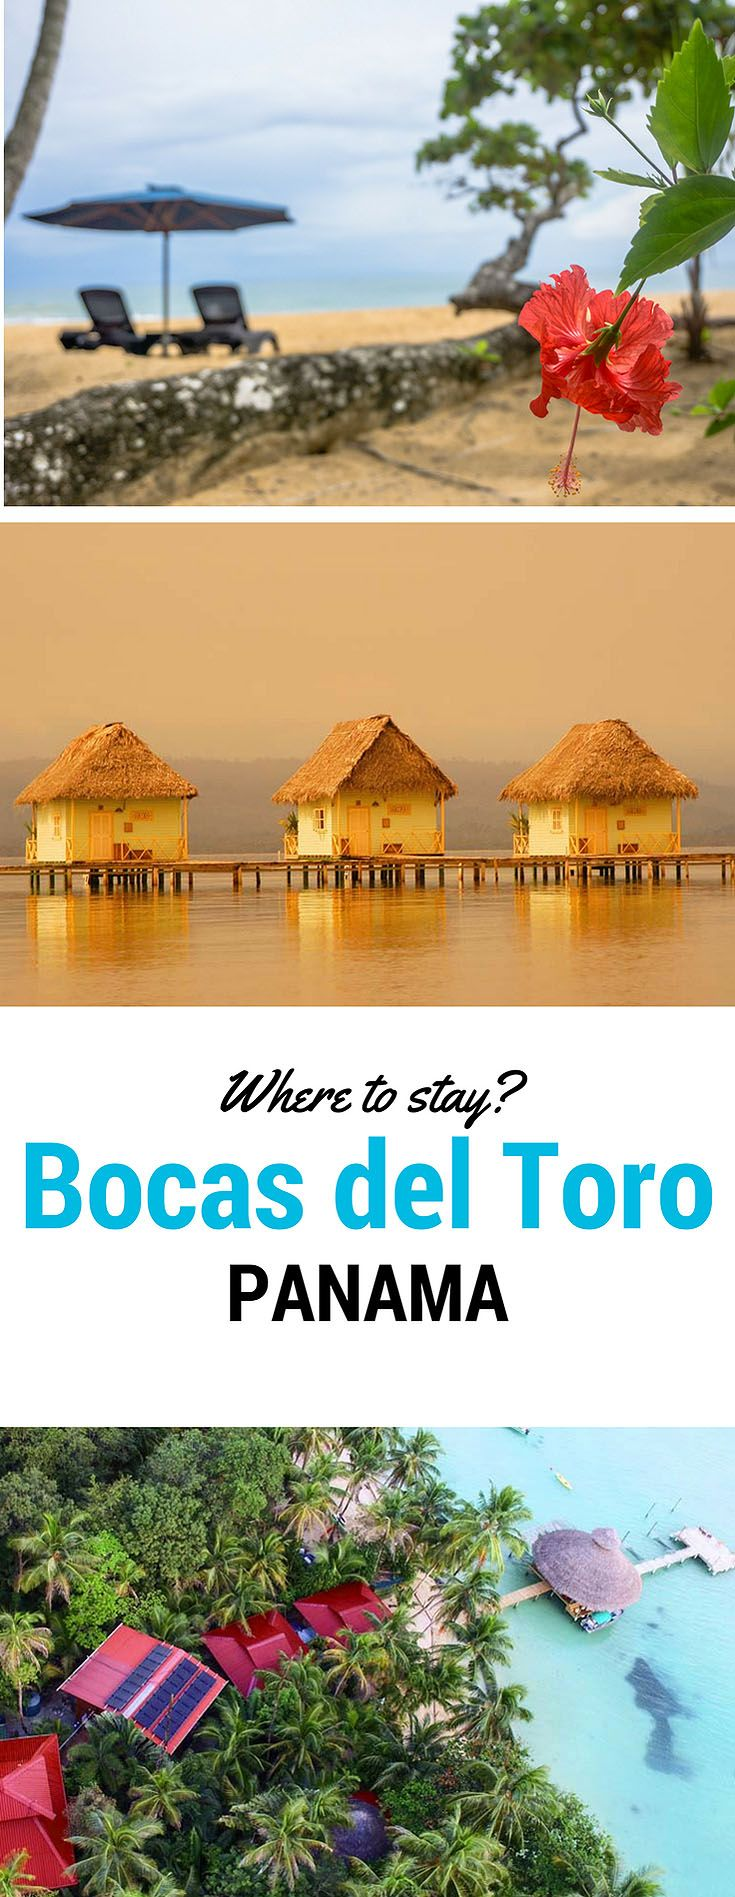 We like five-star hotels :-). So the first question on our minds after deciding to go: What are the best places to stay in Bocas del Toro? Tricky, because you'll be hard-pressed to find true luxury hotels on Bocas del Toro. However, we found and stayed at these 3 wonderful boutique eco-inns -- see our reviews of these best places to stay on Bocas del Toro...